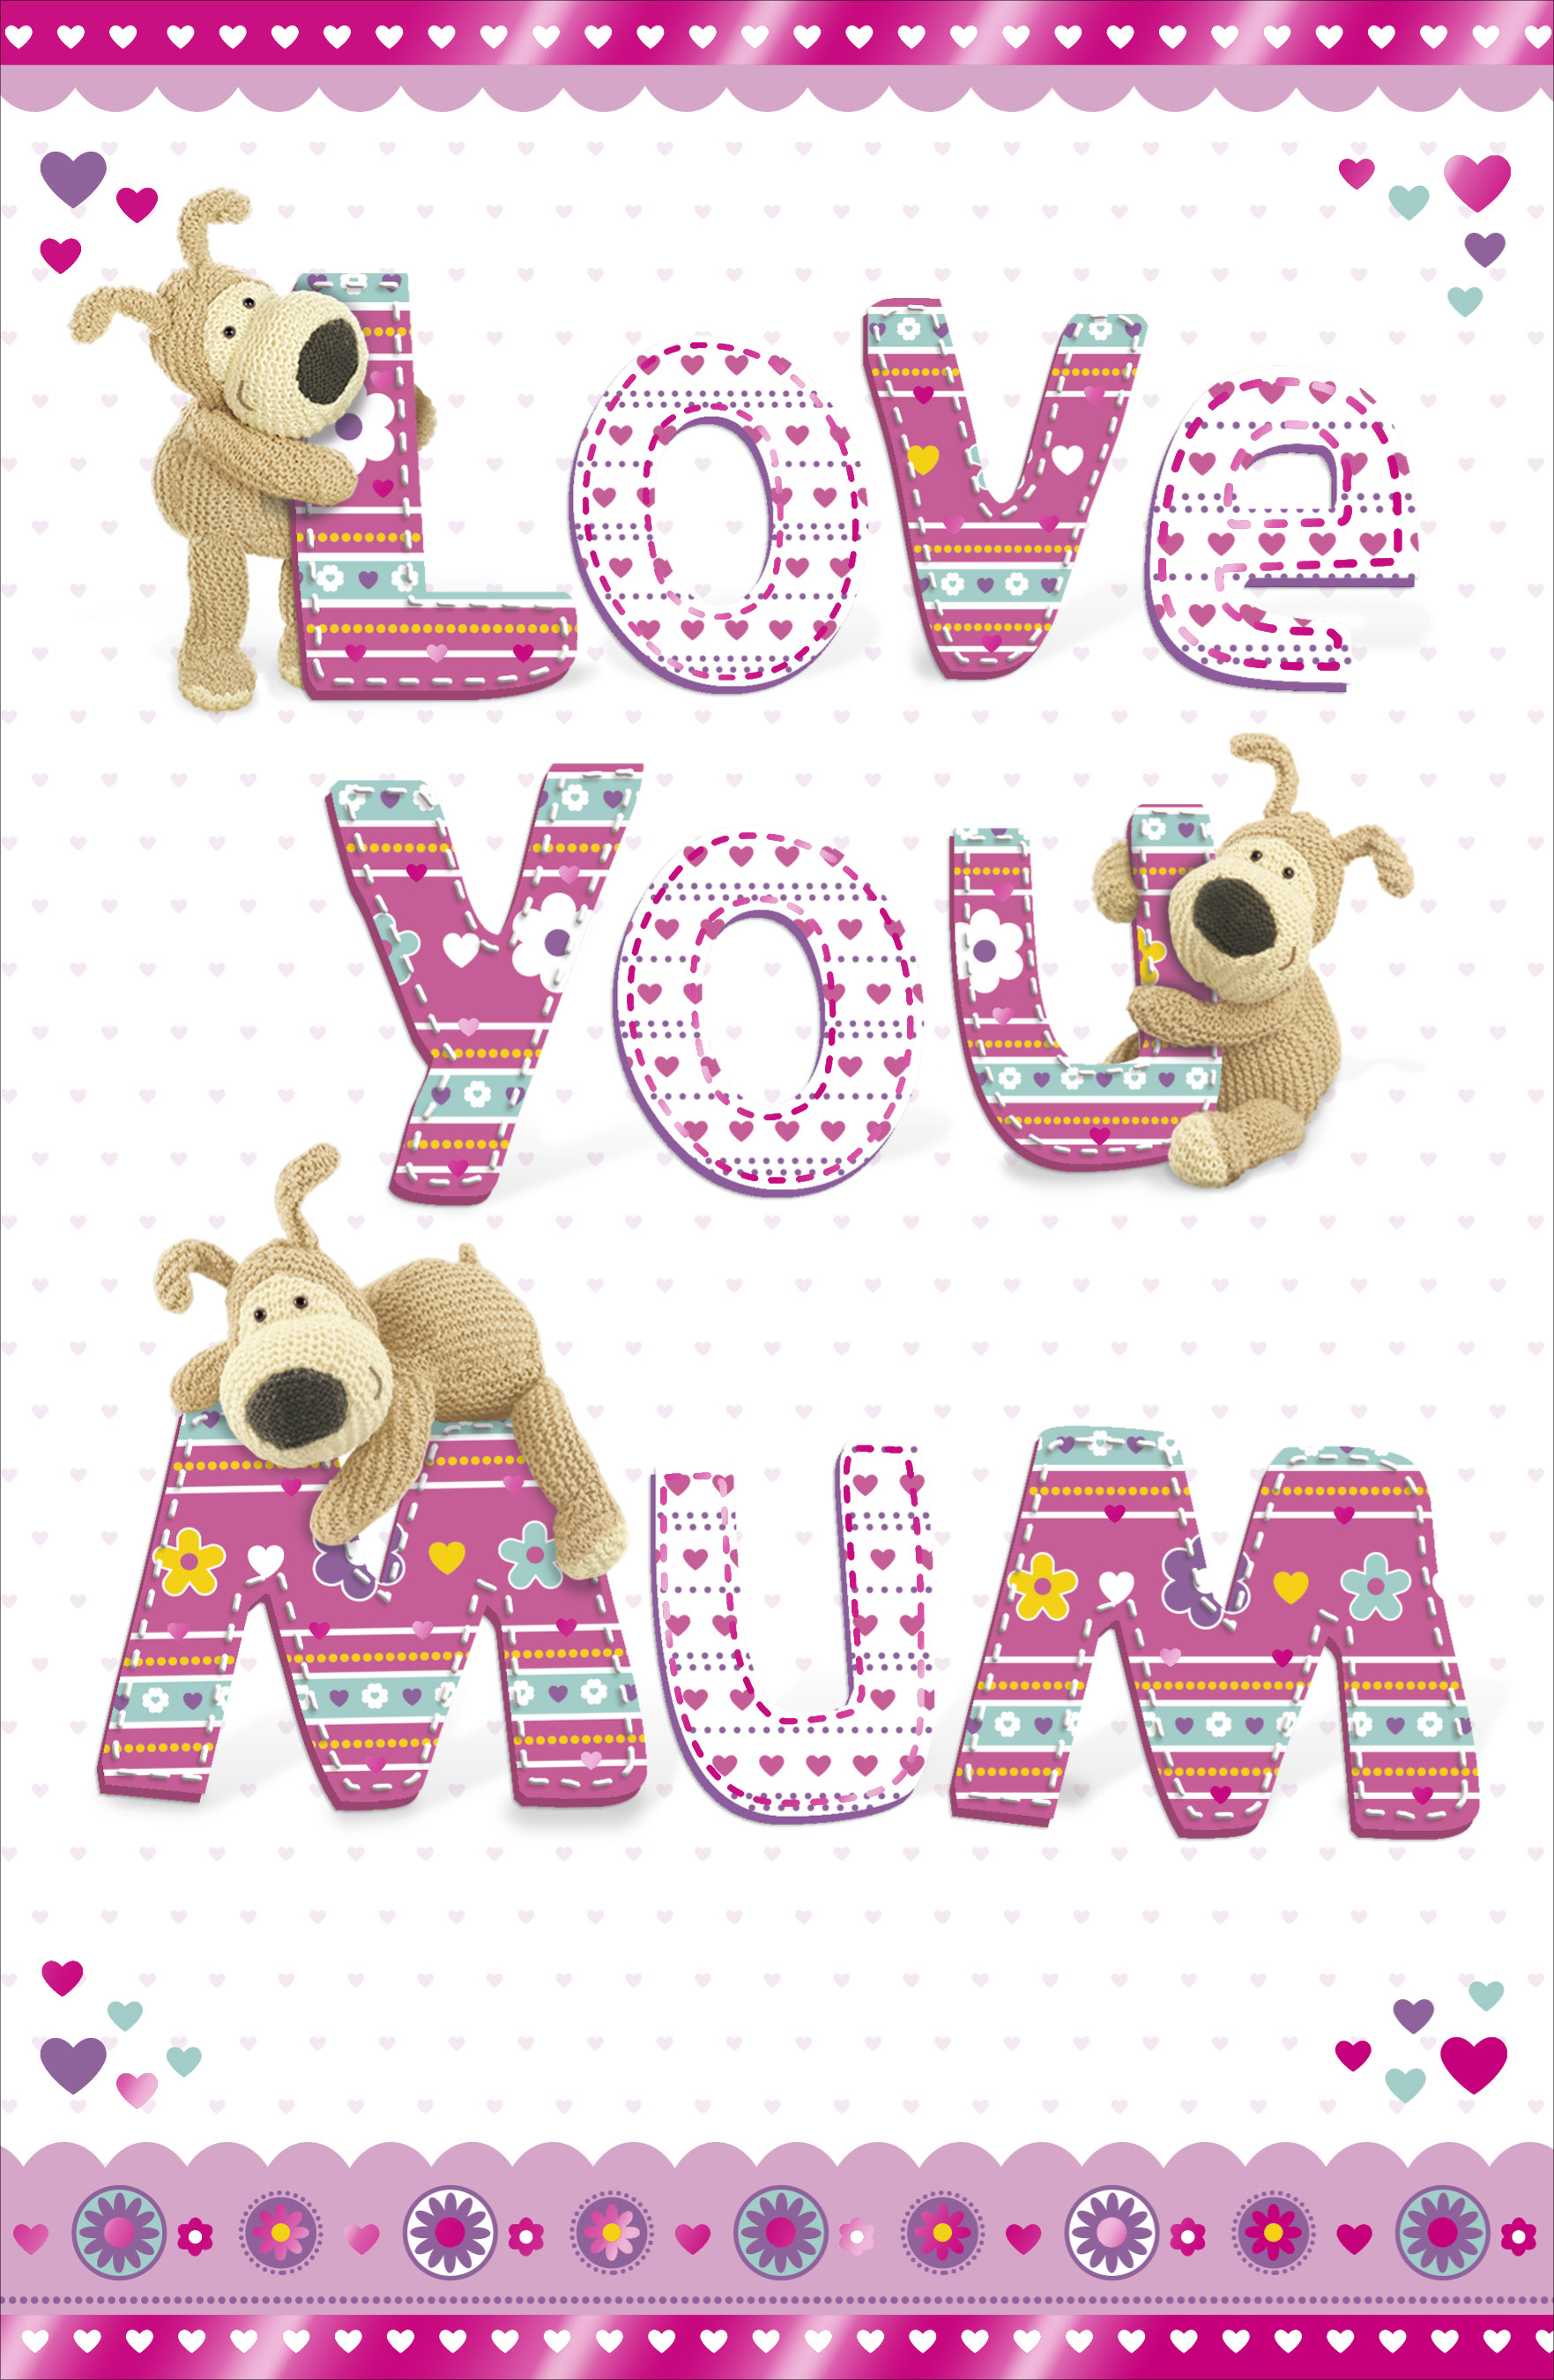 Sentinel Boofle Love You Mum Happy Mother's Day Card Cute Range Greeting Cards